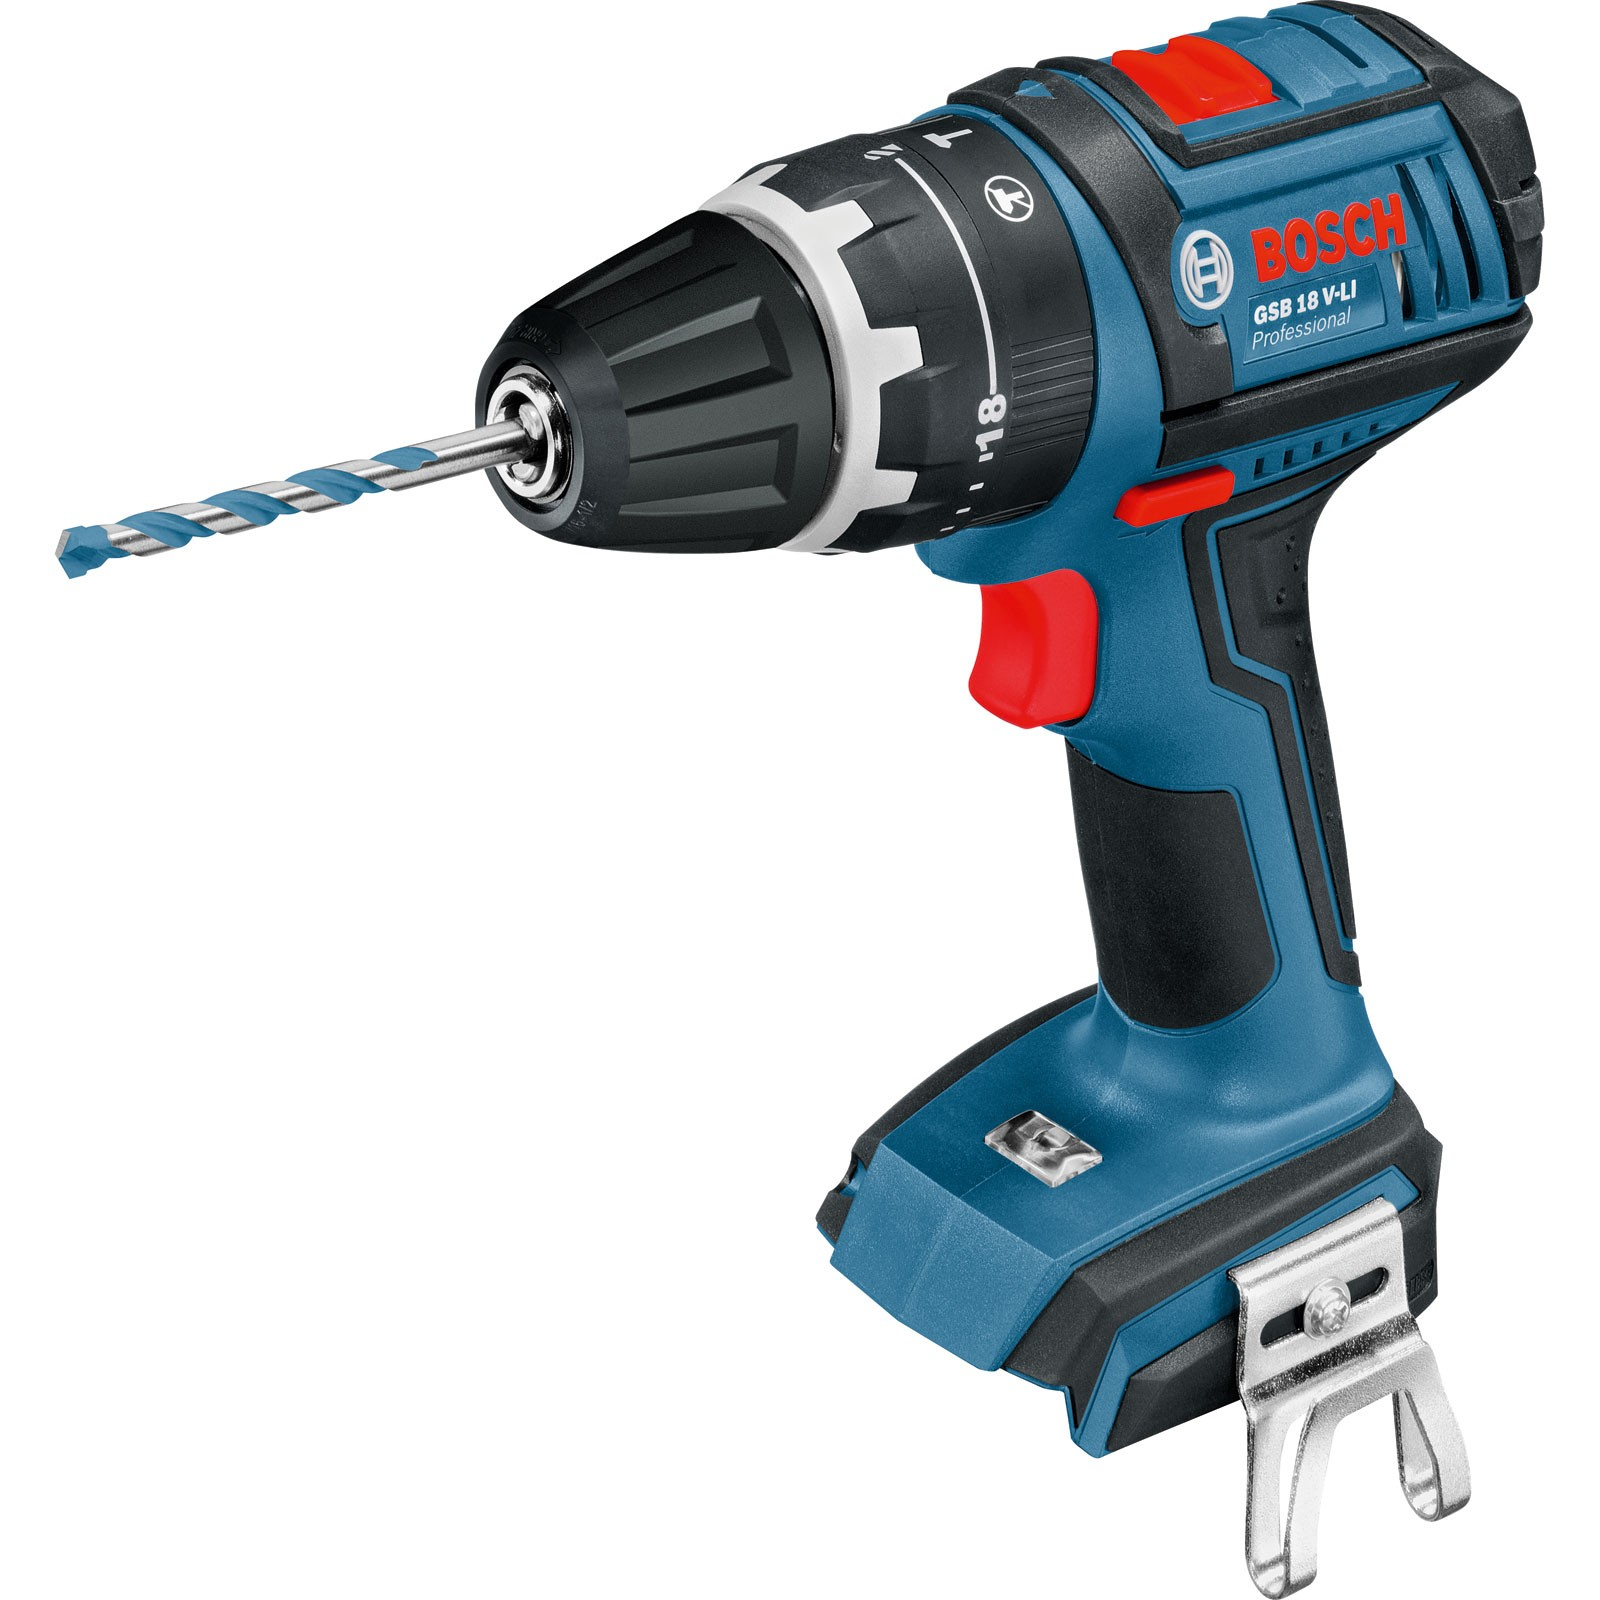 Bosch GSB 18 V-LI Combi Drill Dynamic Series Body Only